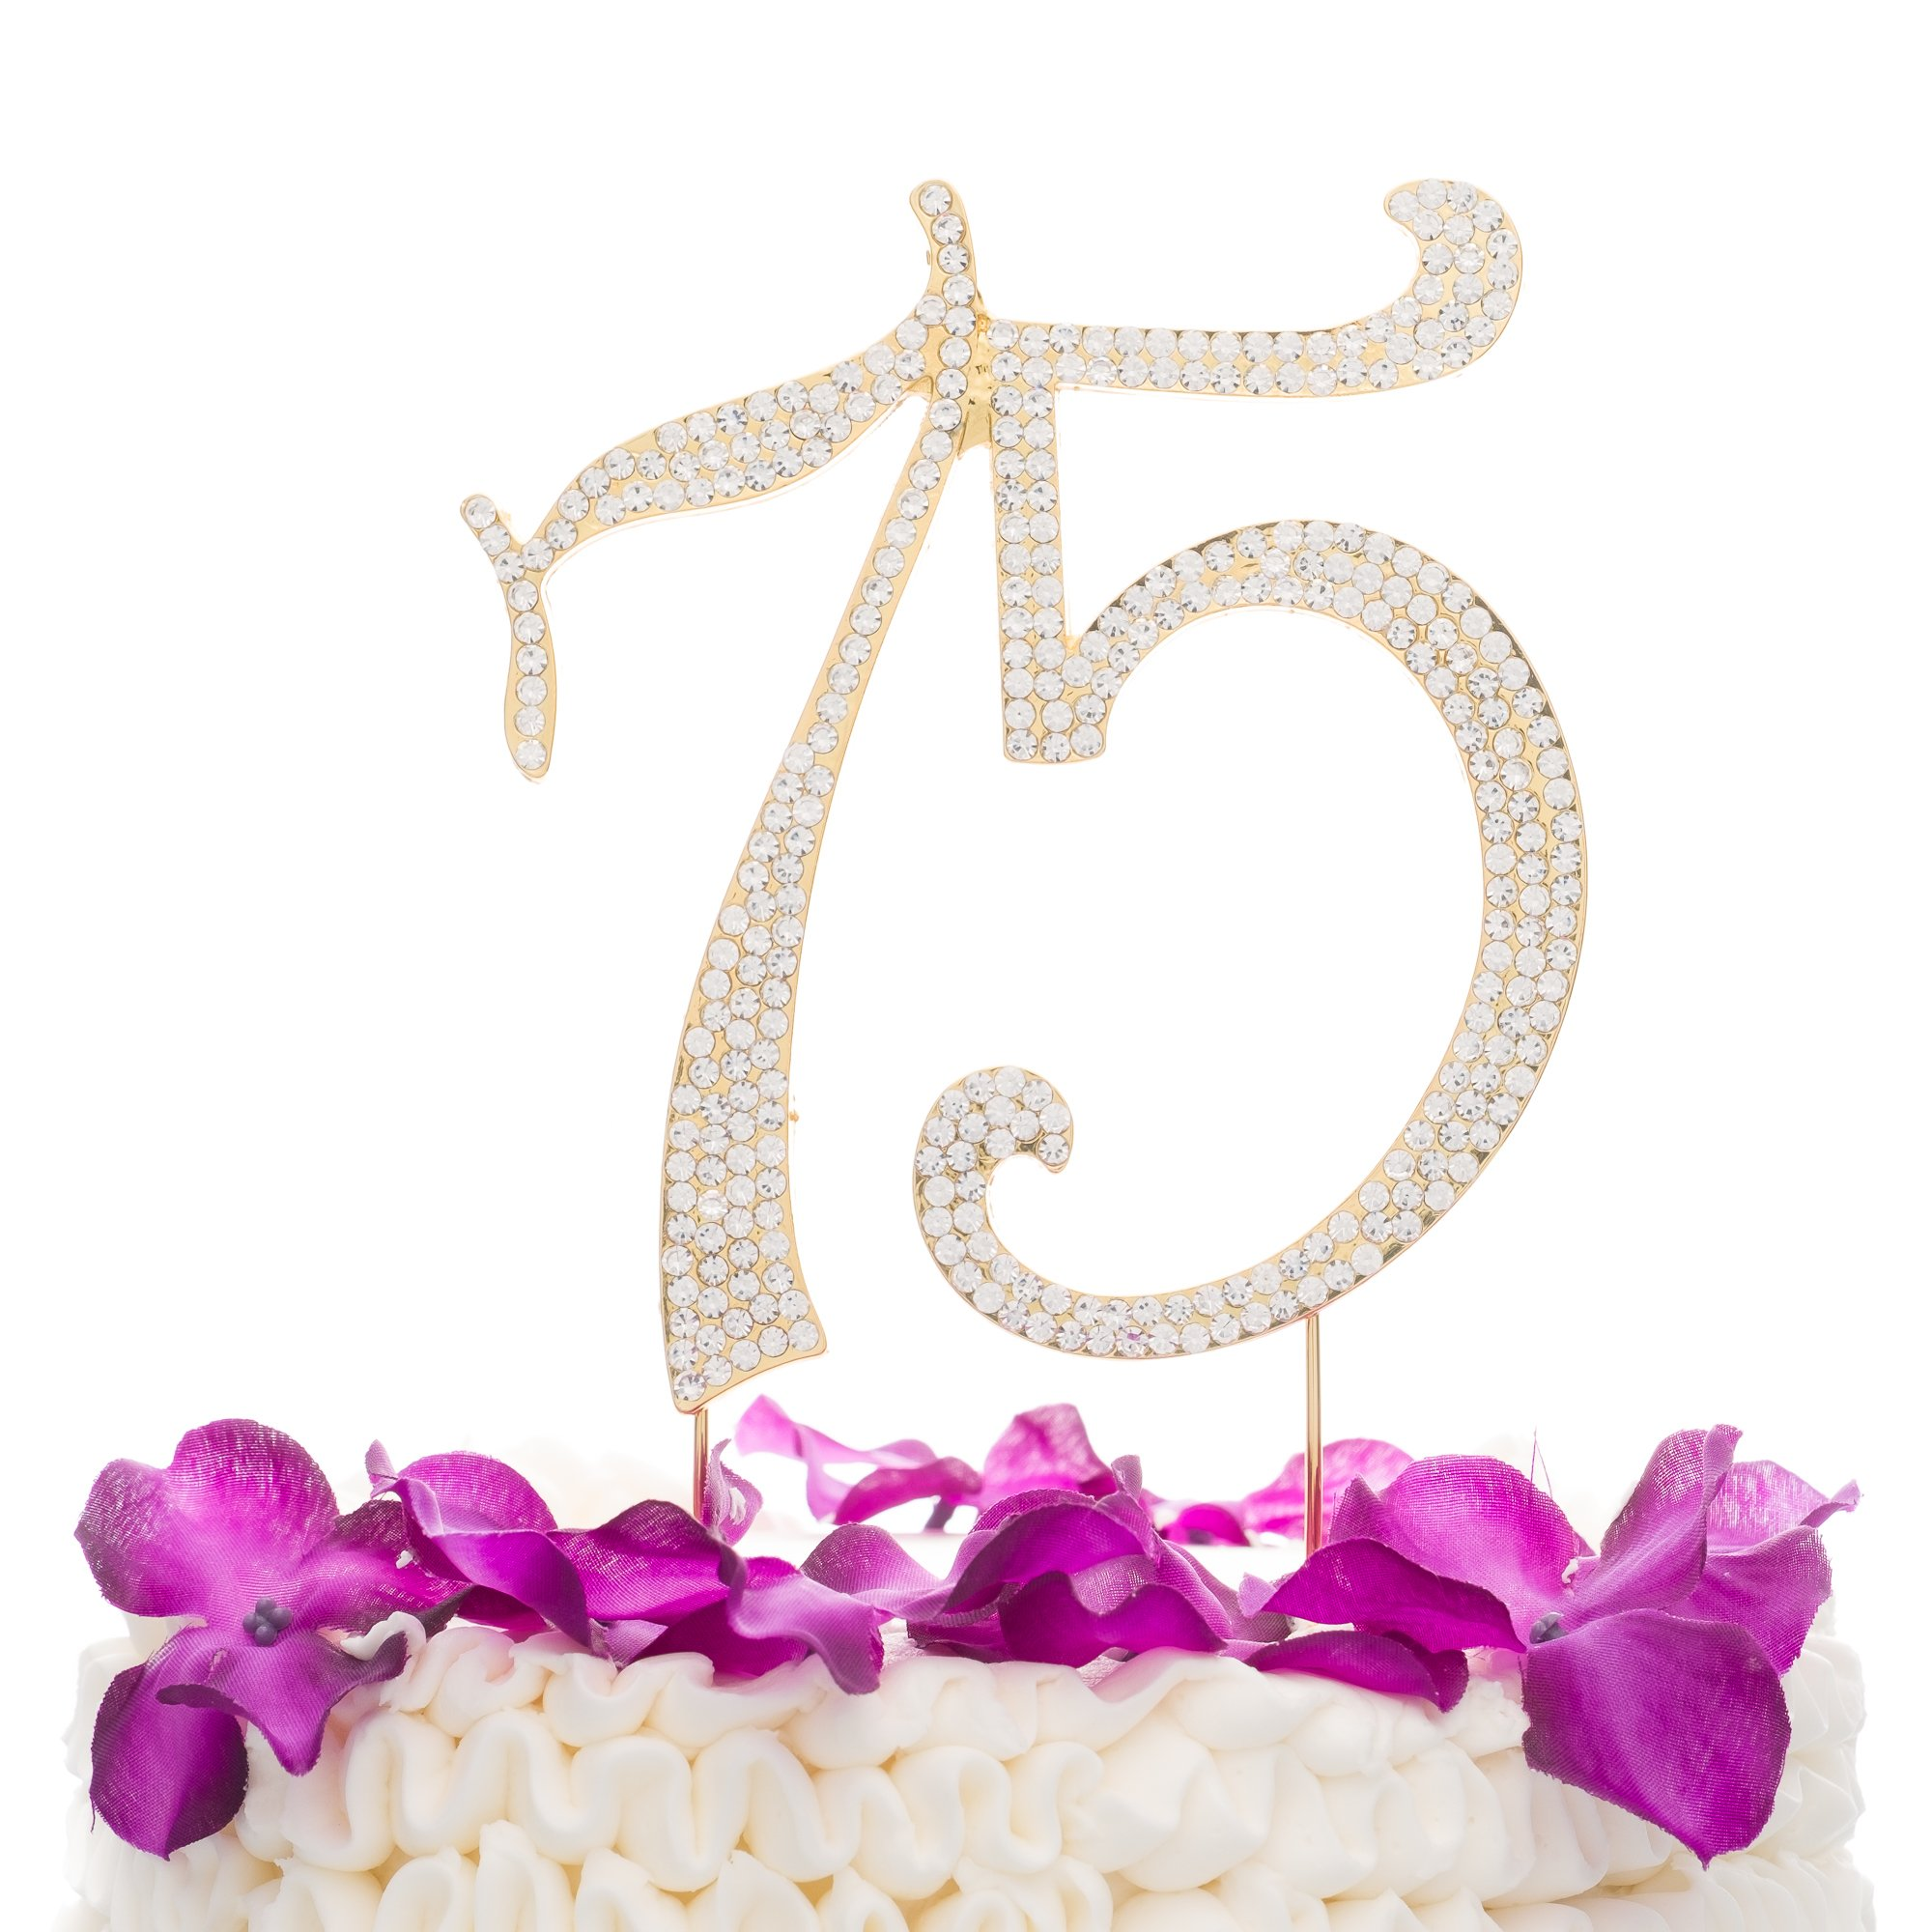 Ella Celebration 75 Cake Topper for 75th Birthday or Anniversary Gold Number Party Supplies Decorations (Gold)